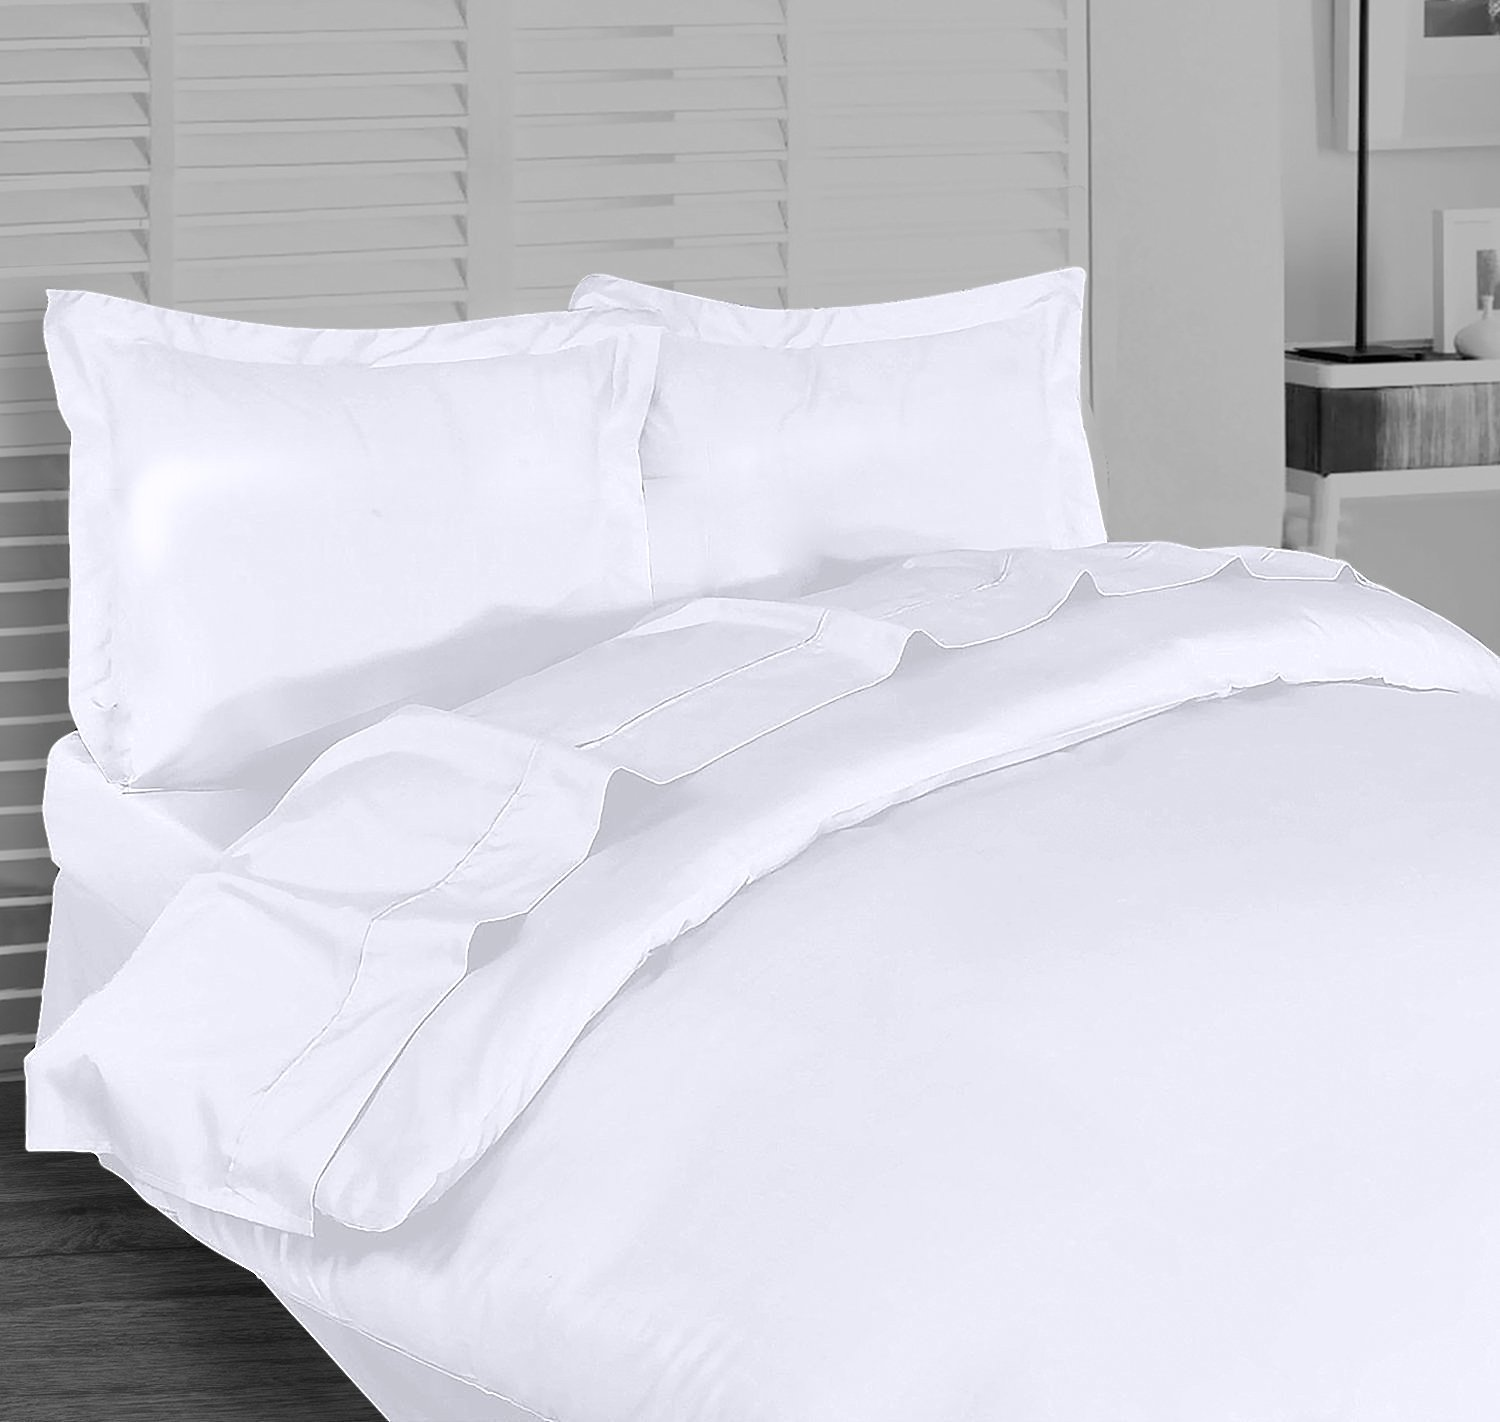 Utopia Bedding 3 Piece King Duvet Cover Set with 2 Pillow Shams, White